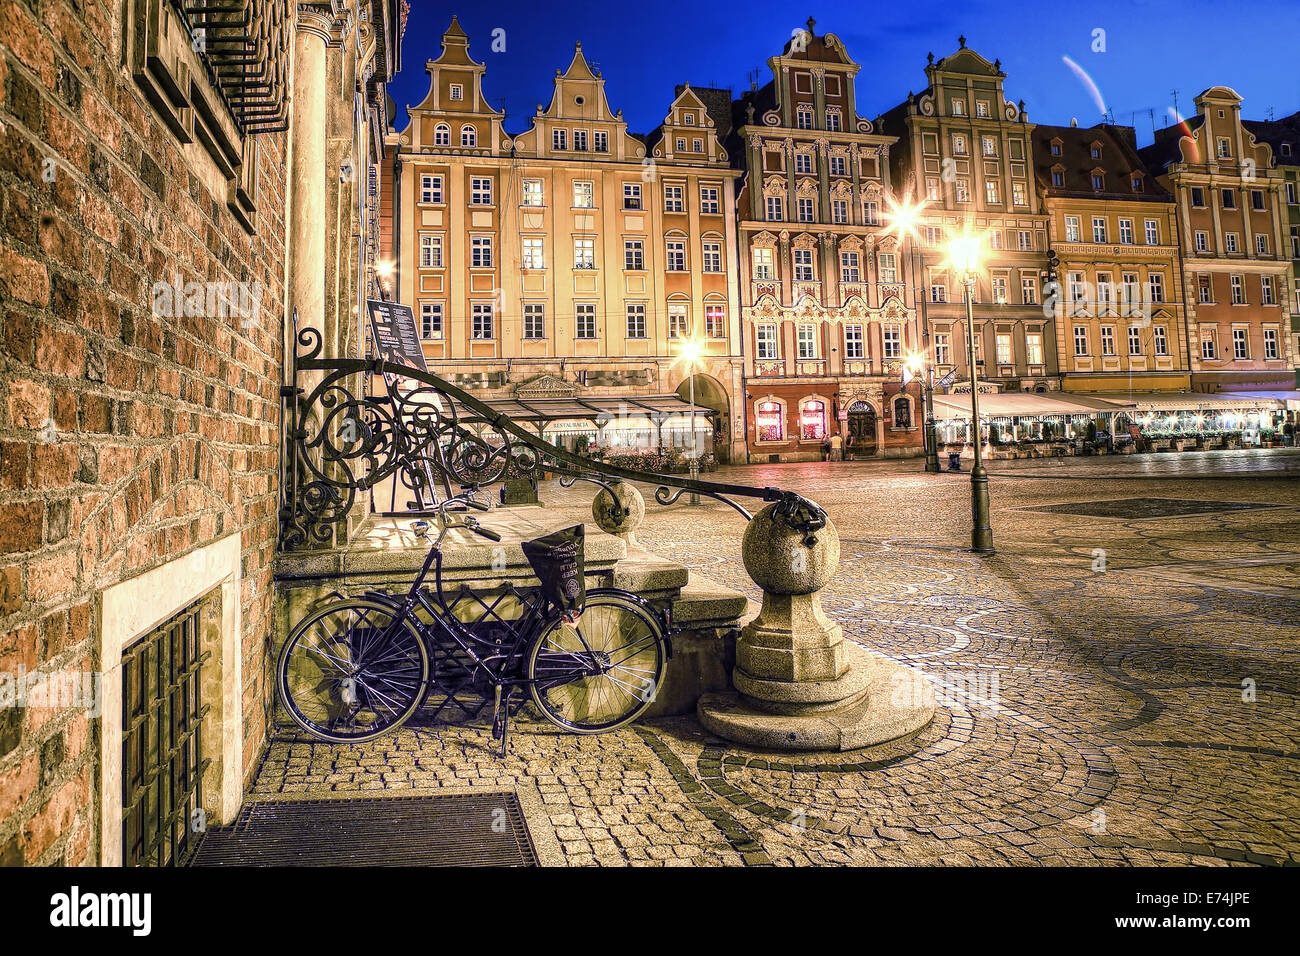 Wroclaw Old Town in the evening. - Stock Image